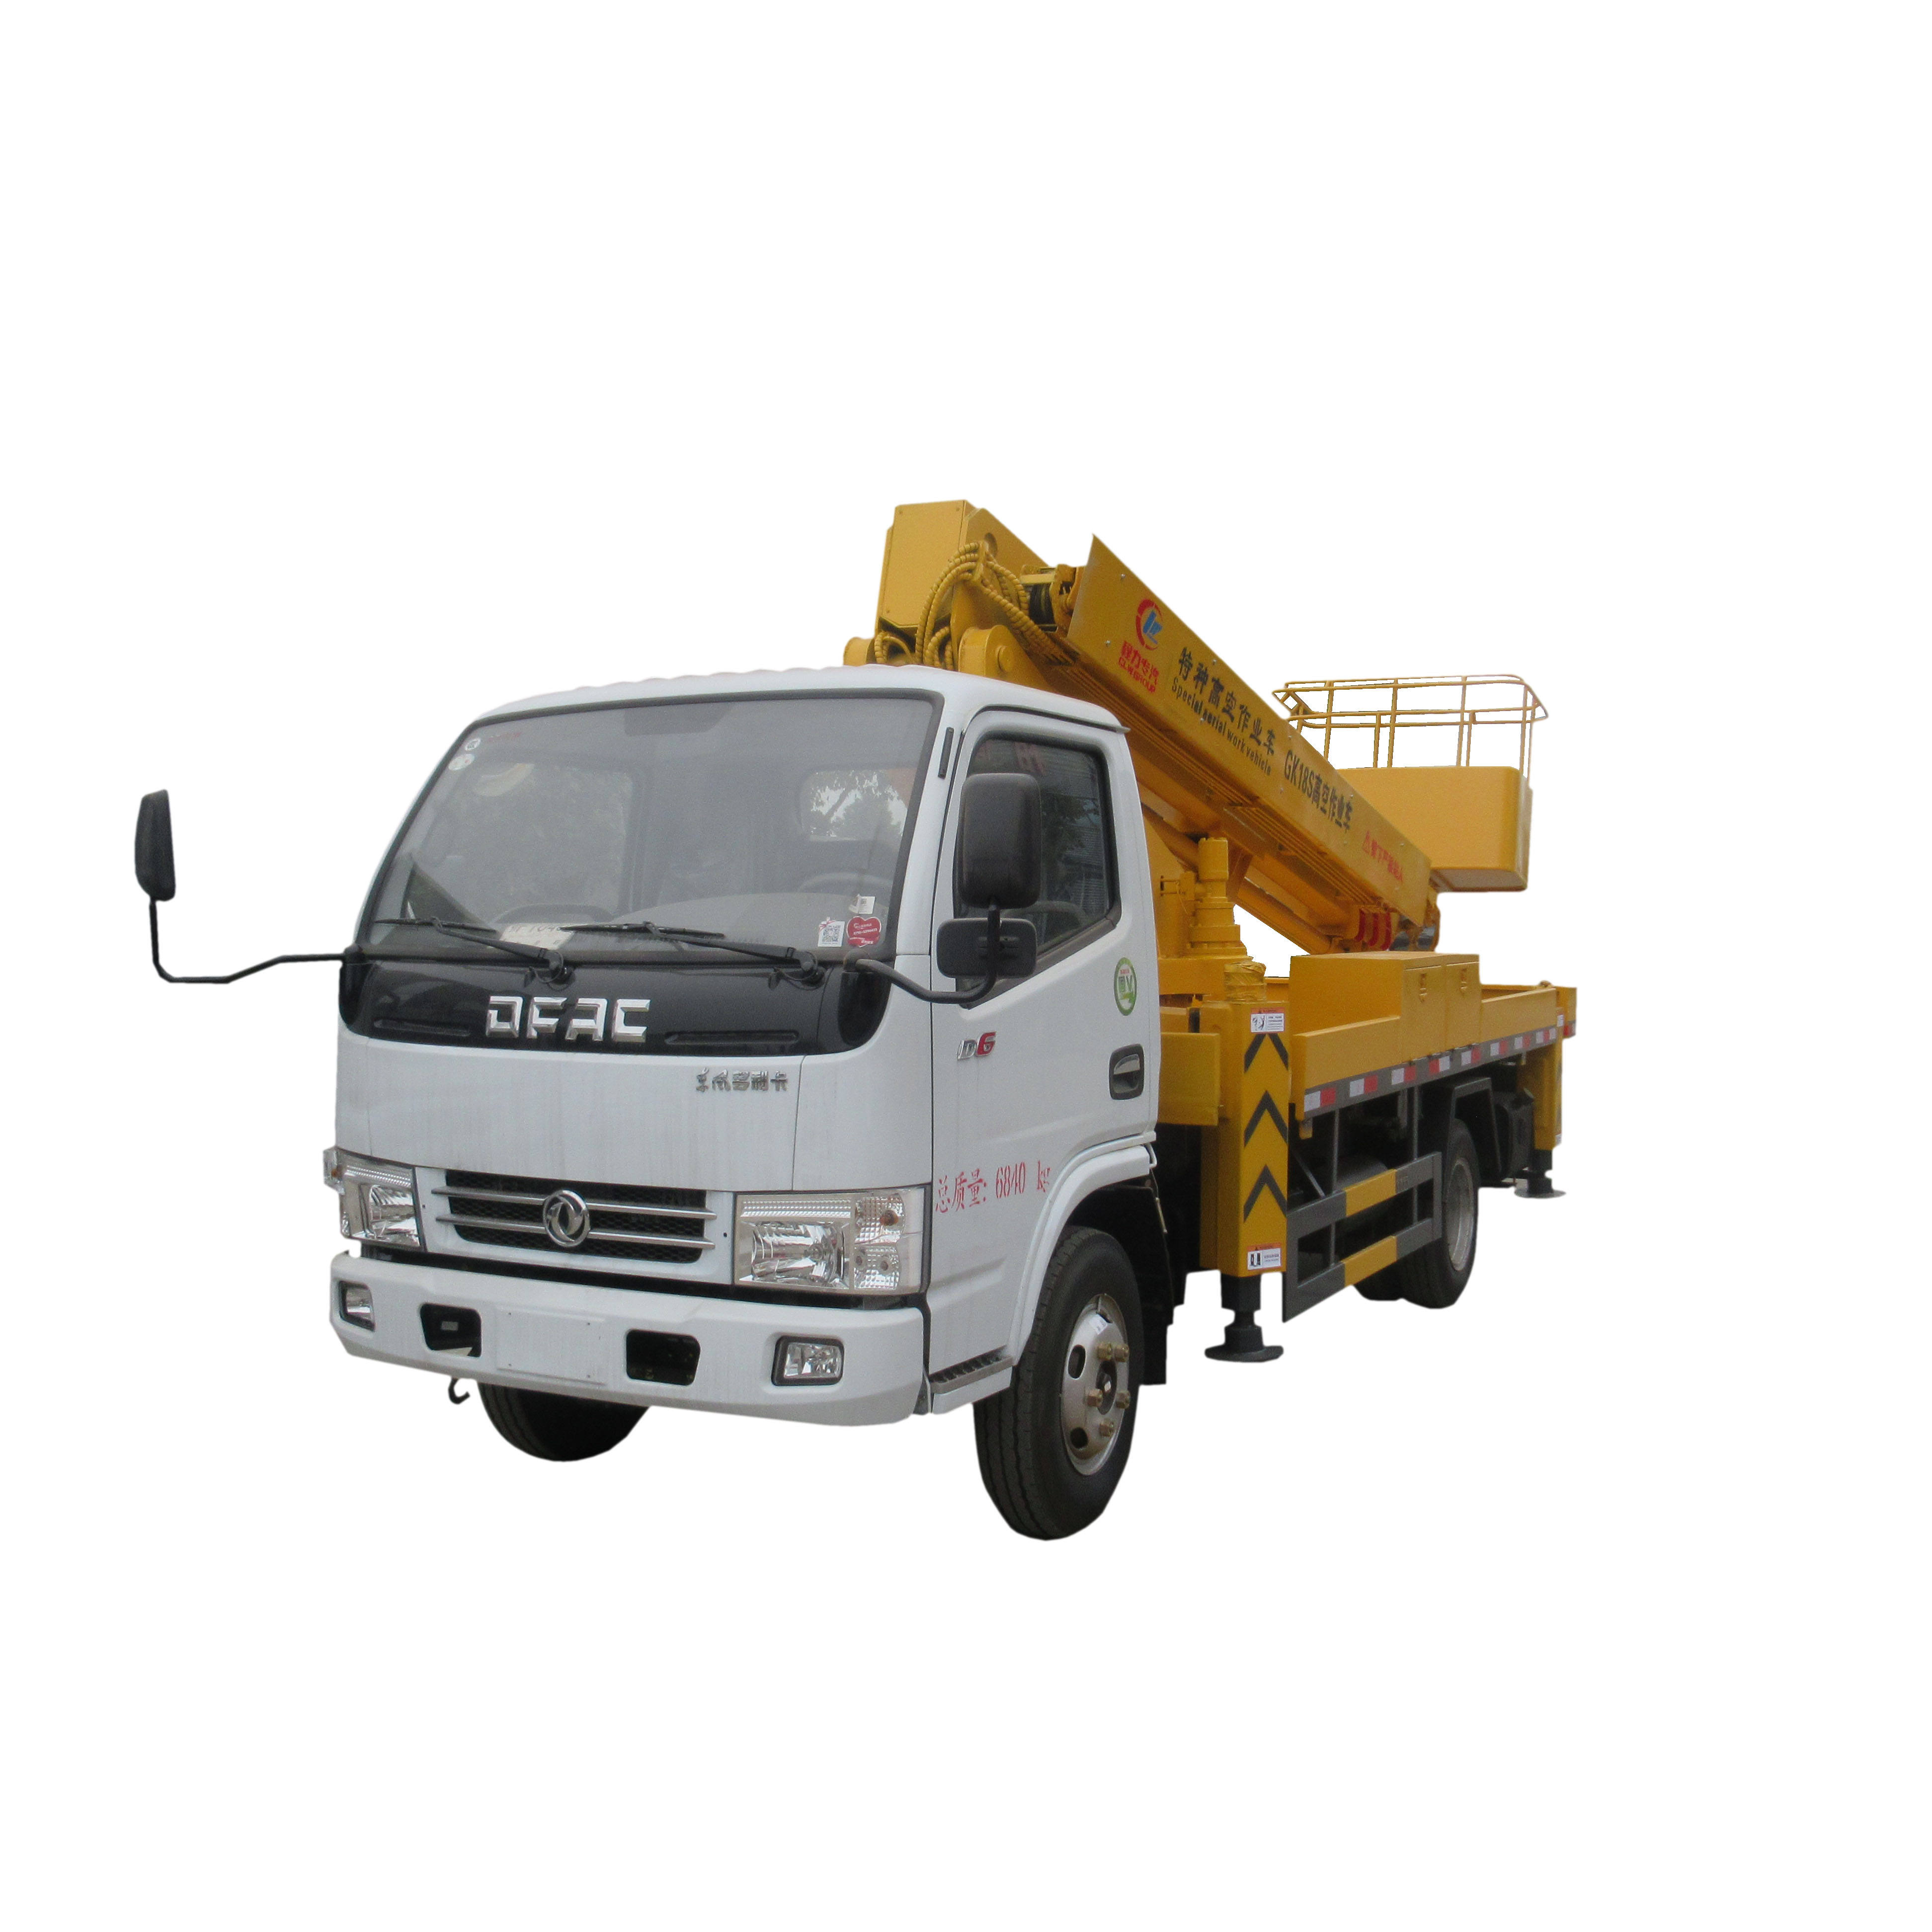 Dongfeng 4x2 12m 16m 18m 20m 22m 32m high working aerial platform telescope truck 14 m hydraulic telescopic aerial platform